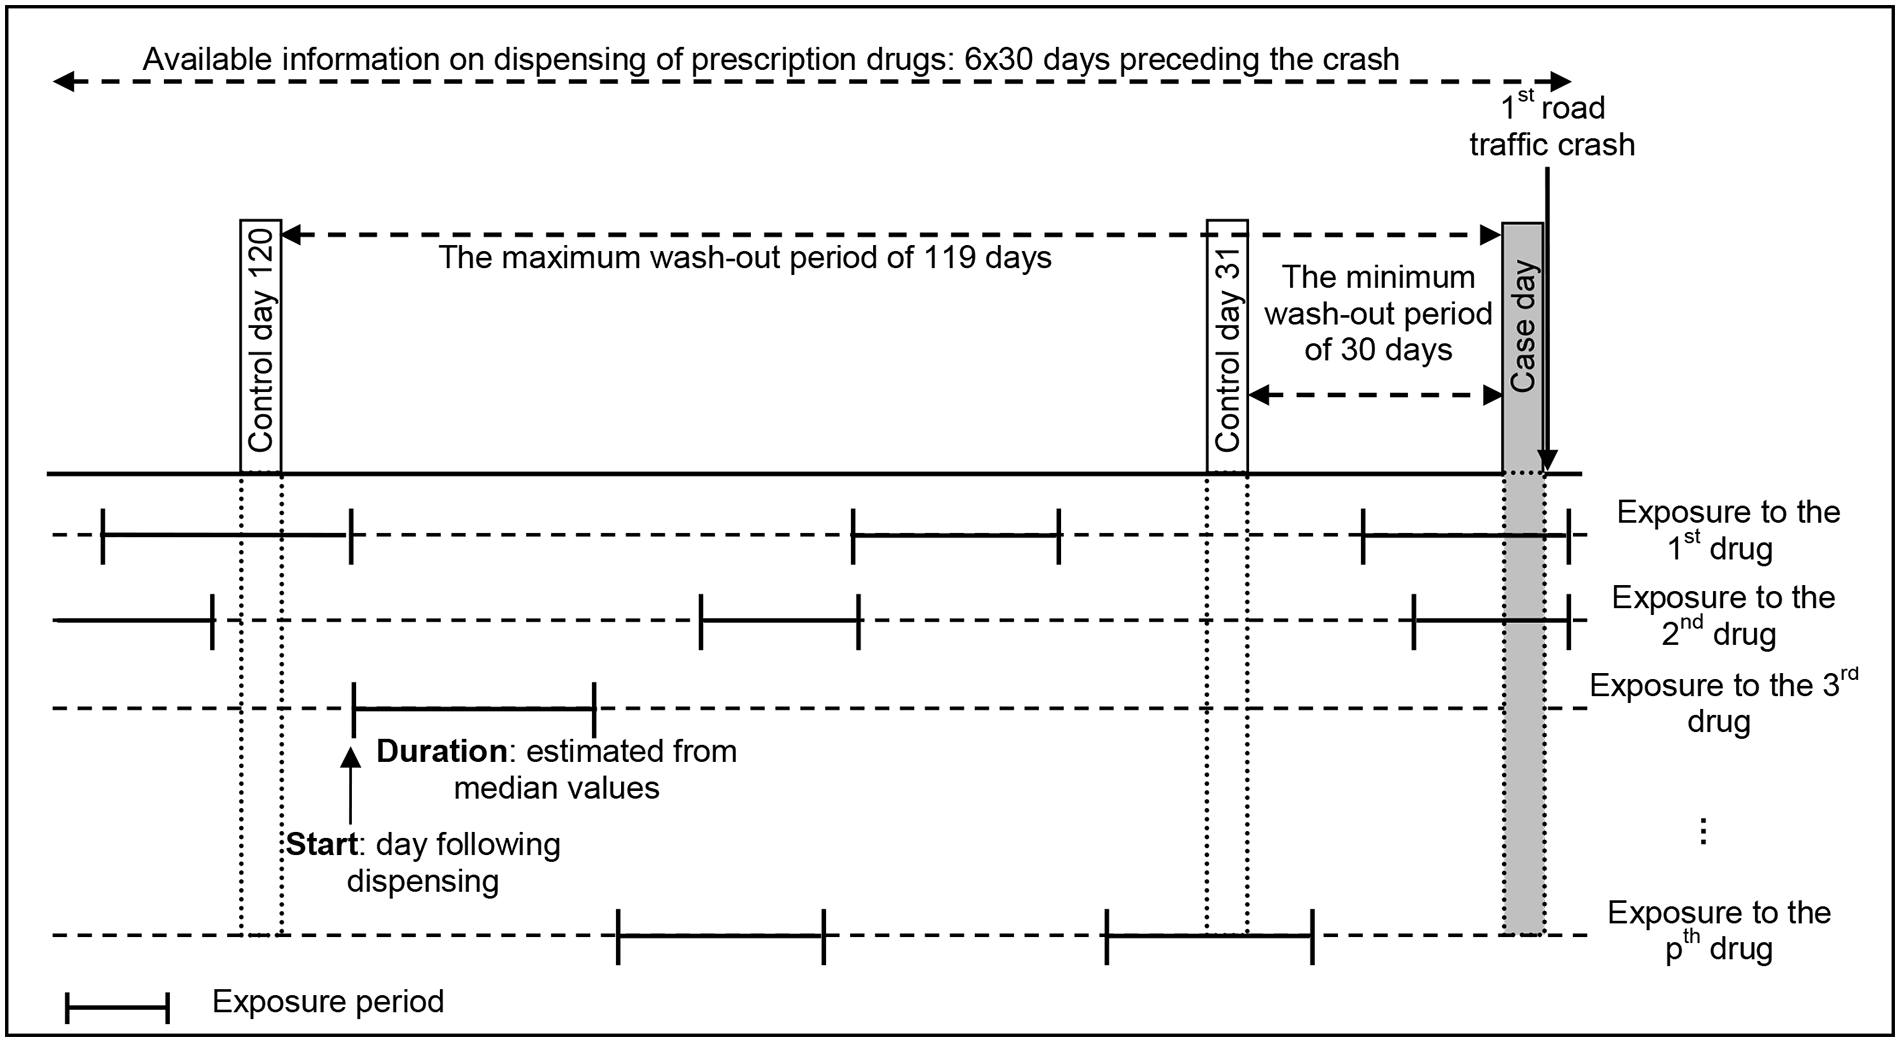 The case-crossover design of the study, with multiple drug exposures and a varying washout period.